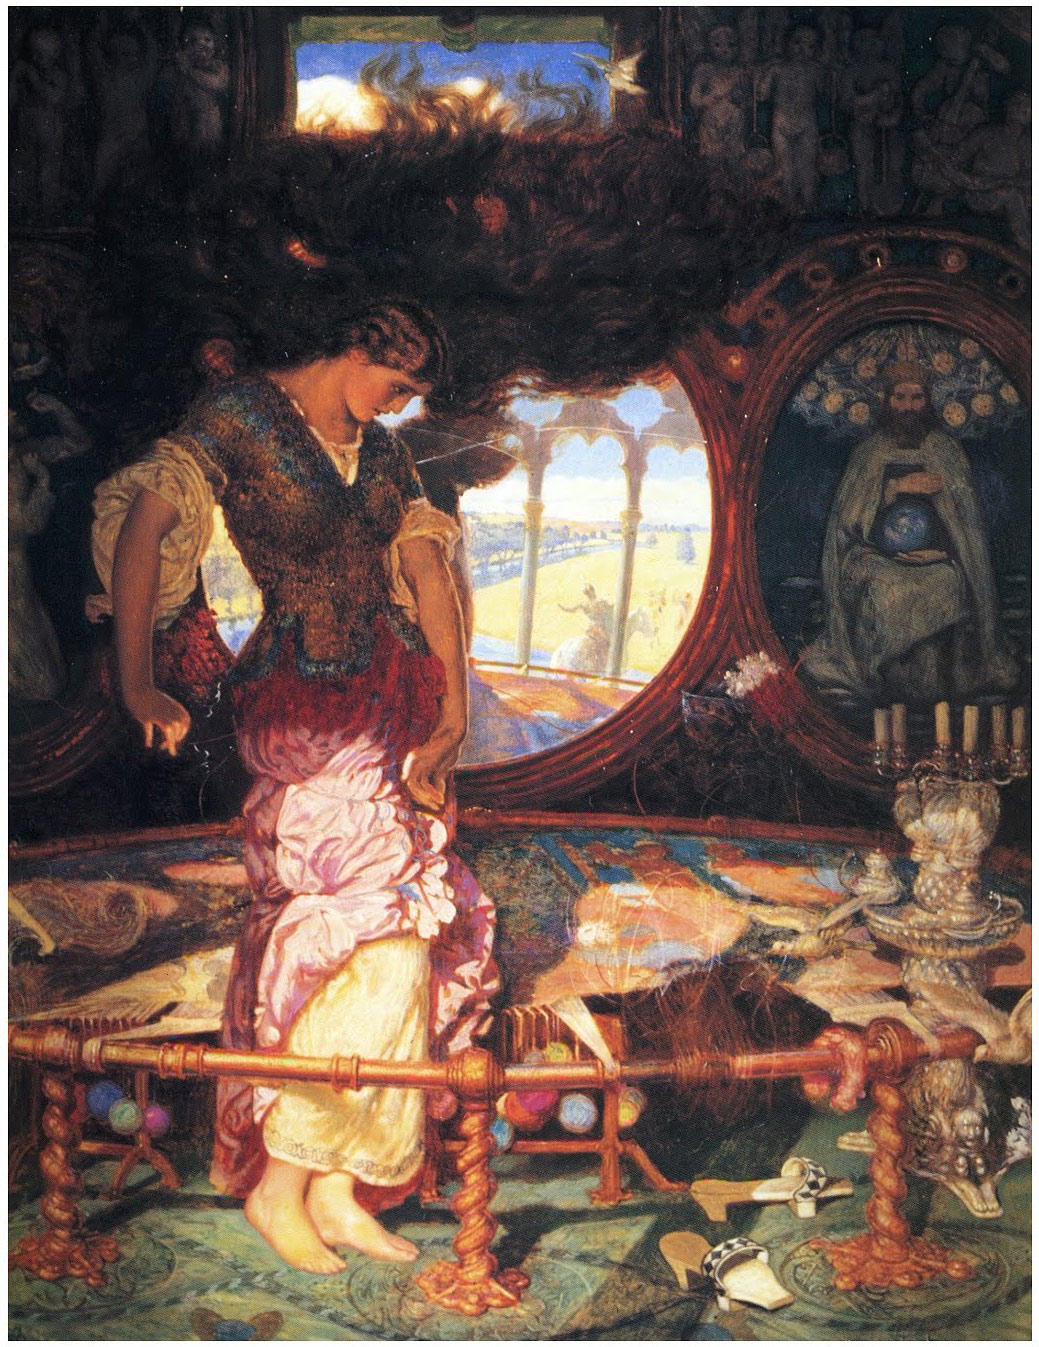 essay on the lady of shalott Read this essay on the lady of shalott come browse our large digital warehouse of free sample essays get the knowledge you need in order to pass your classes and more.